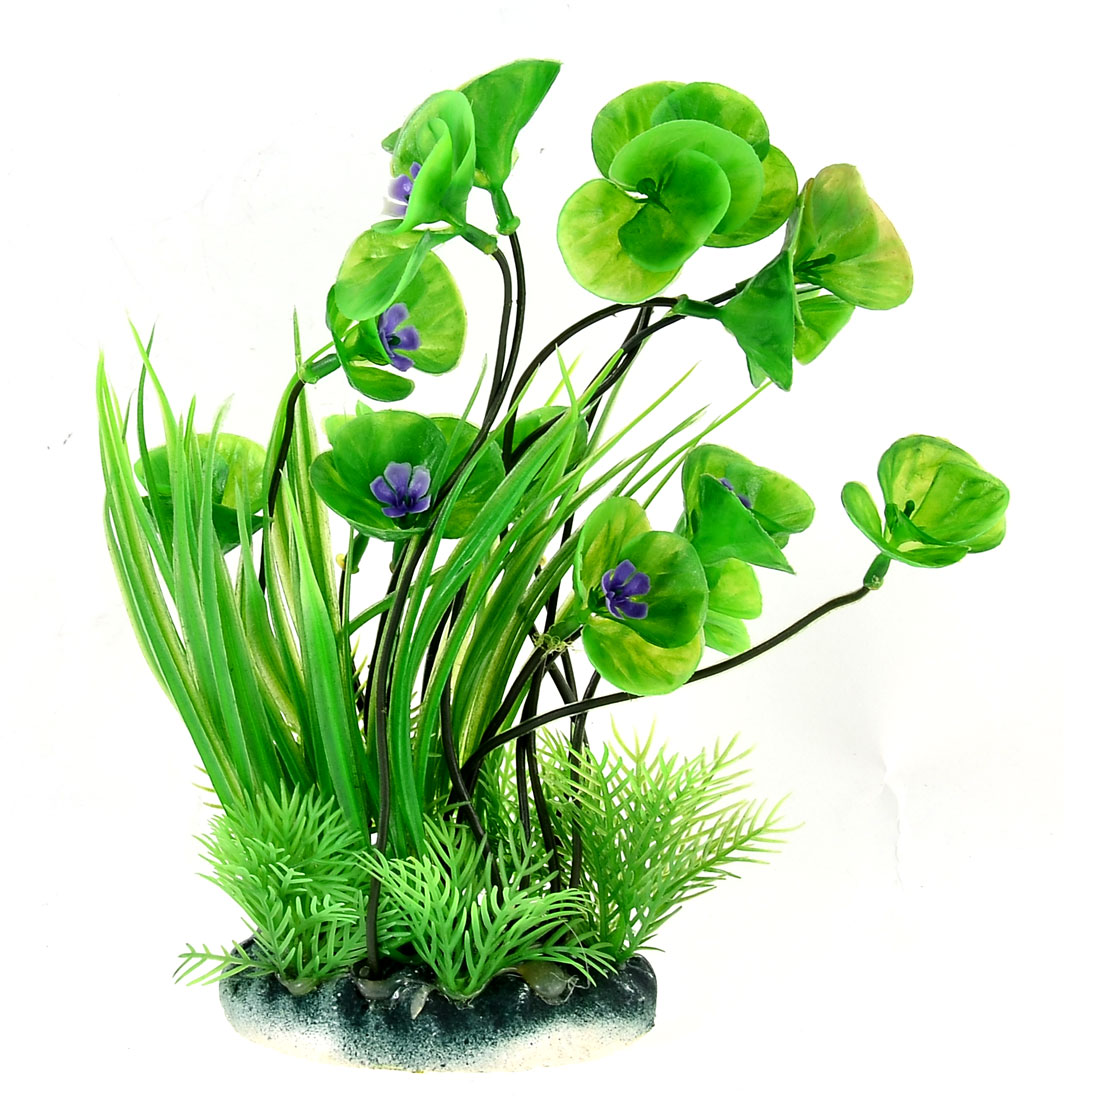 Aquarium Fish Tank Landscaping Artificial Plastic Aquatic Narcissus Water Plants Violet Green 23cm High